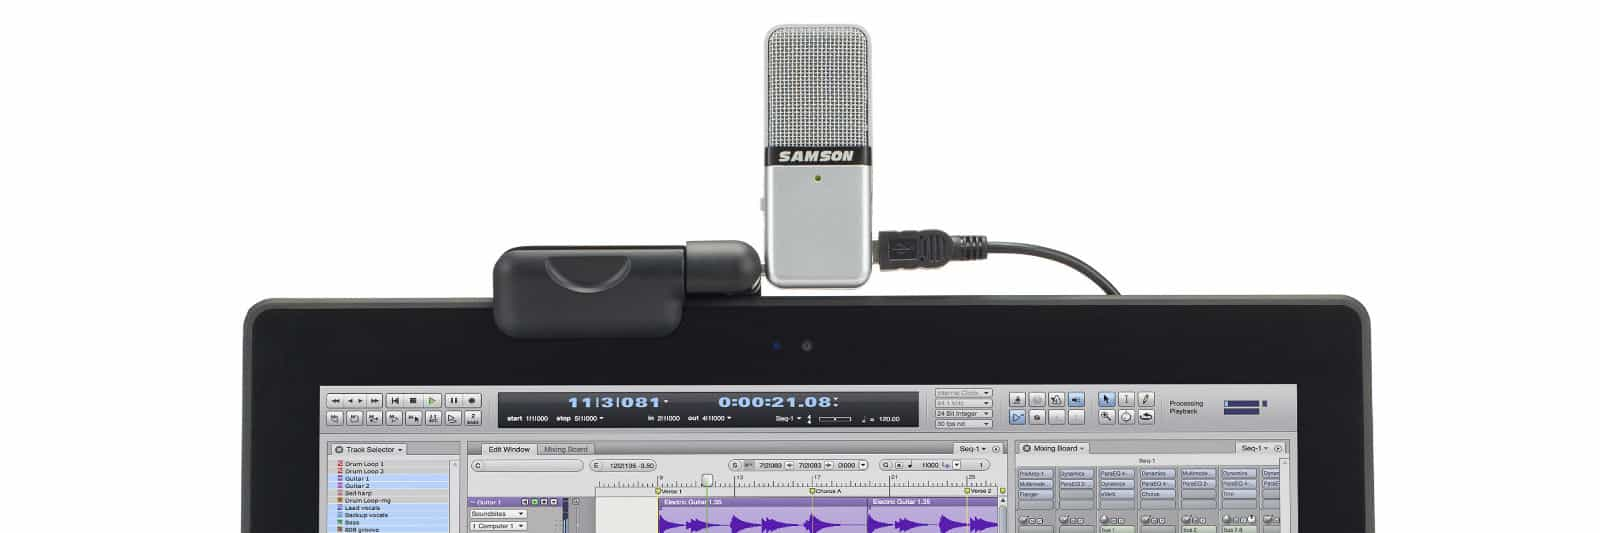 Samson Go Mic USB Microphone Review